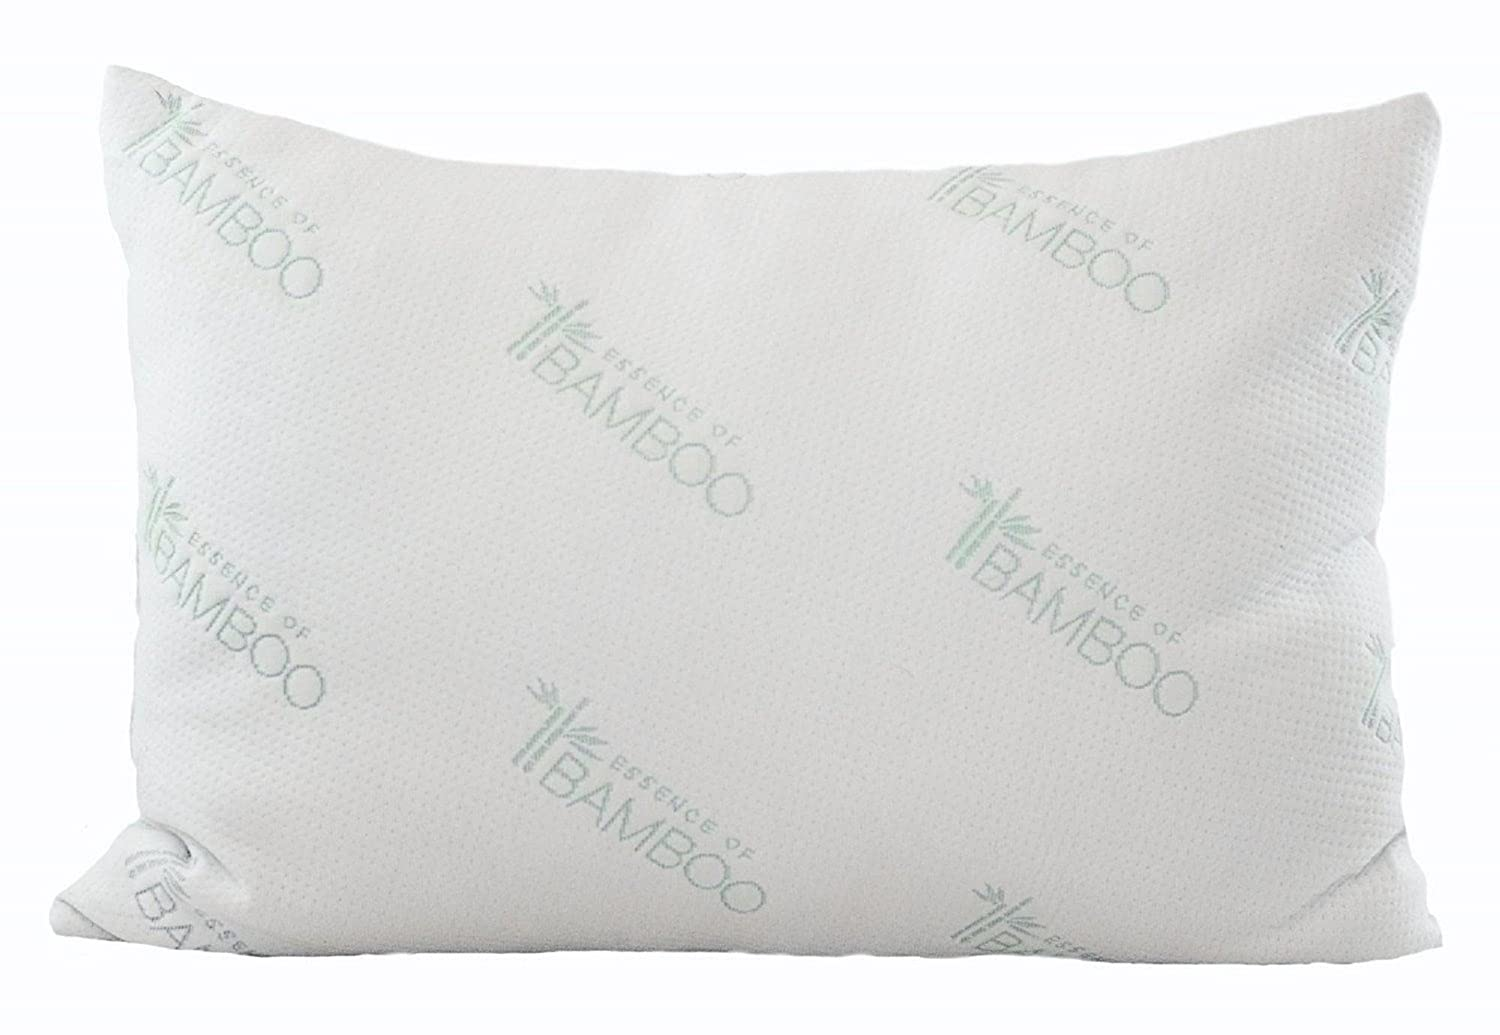 of the pillows fiber work quality hotel filled in cooling how do pillow bamboo luxury stay cool usa